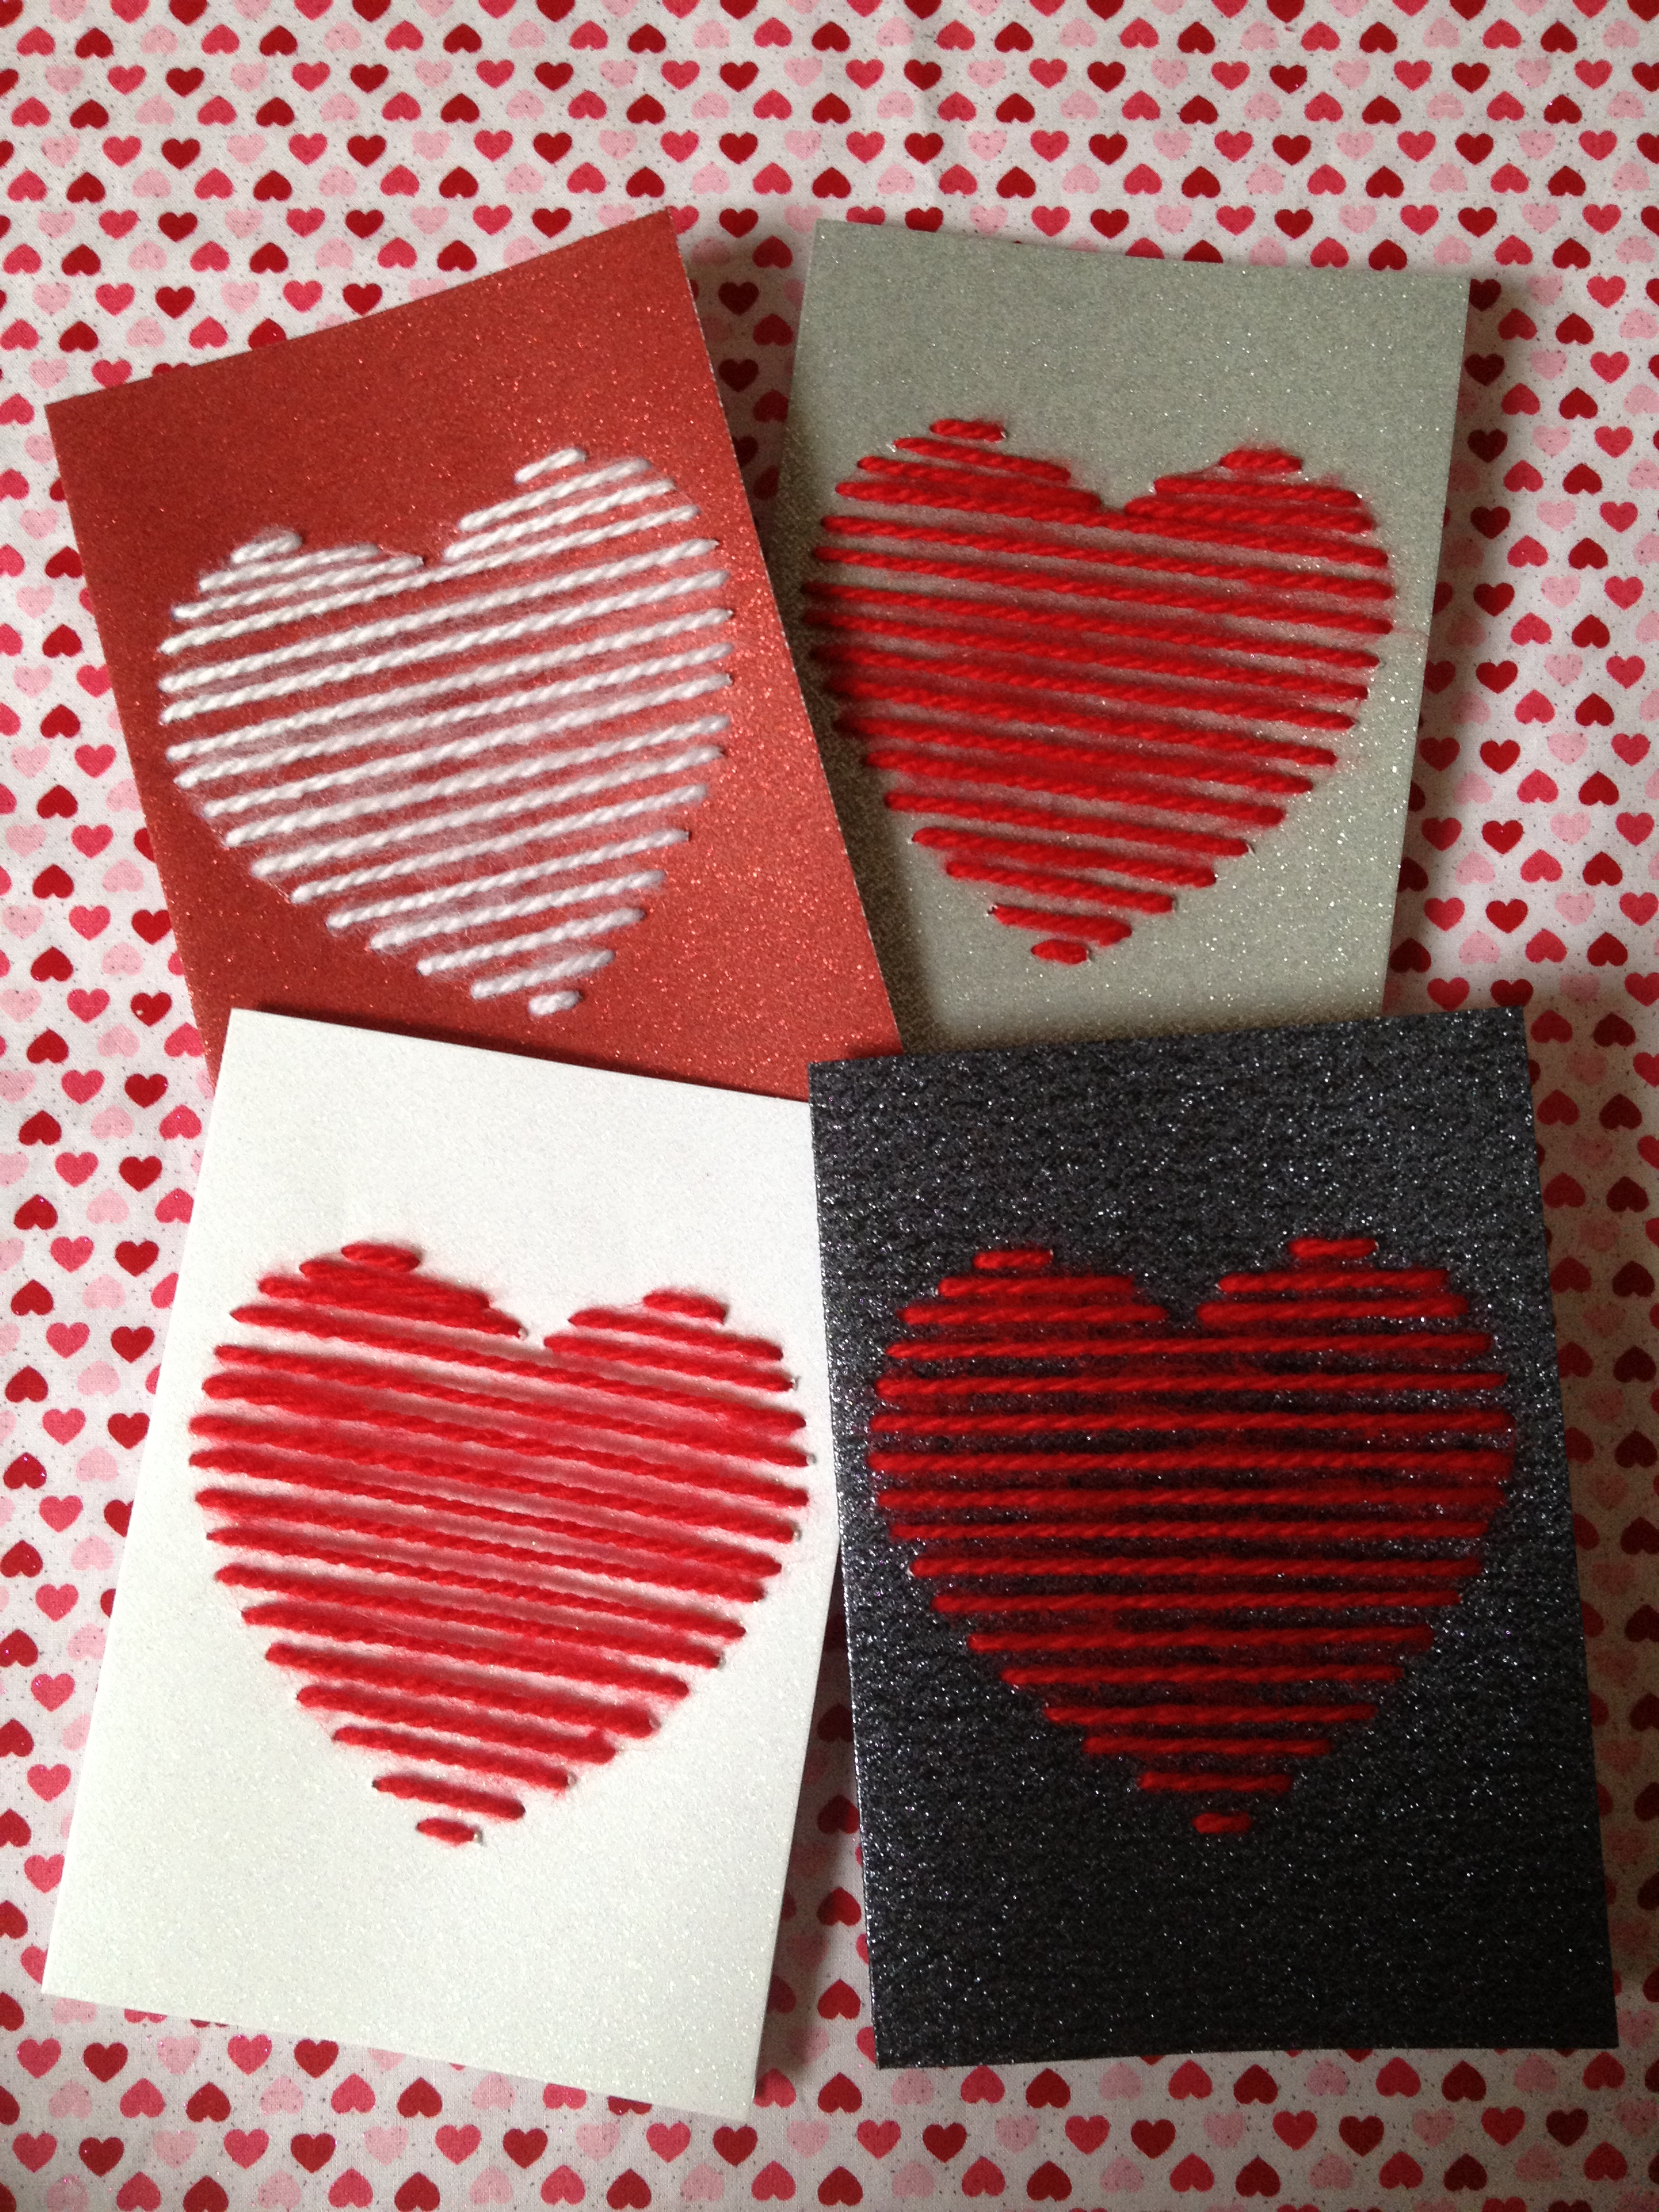 Diy Yarn Heart Valentine Day